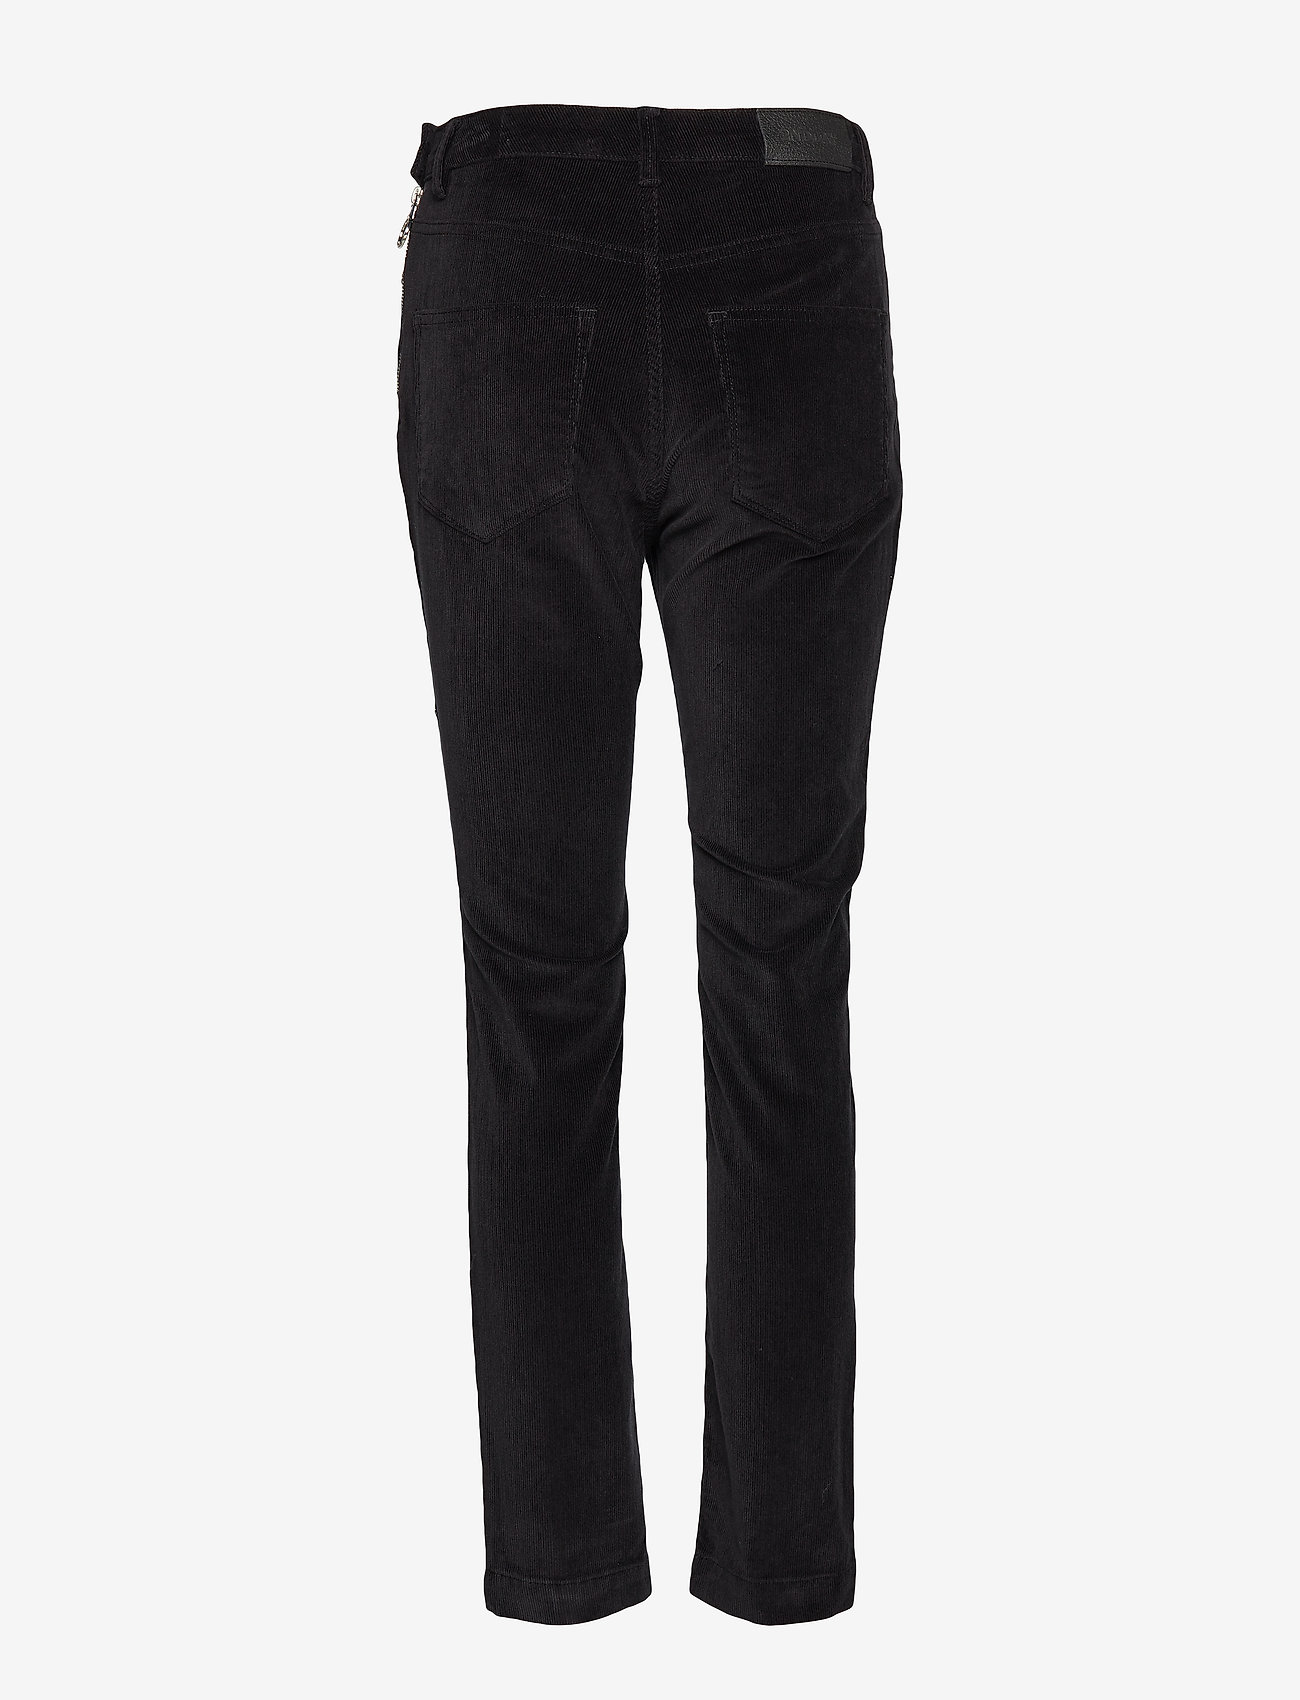 2NDDAY - 2ND Jeanett Cord - straight leg trousers - black - 1